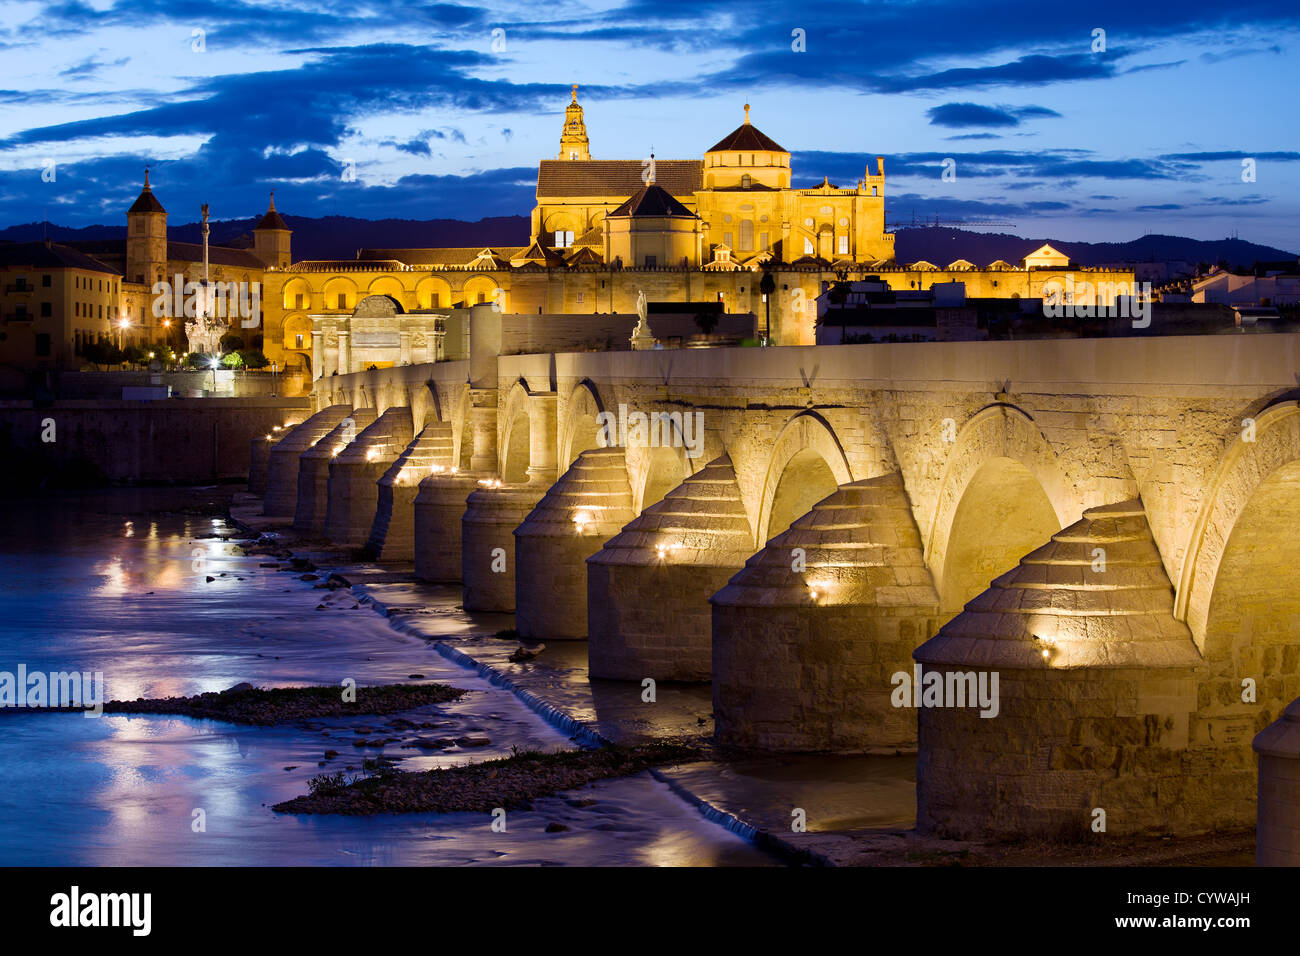 Roman Bridge on Guadalquivir river and Mosque Cathedral (La Mezquita) illuminated at dusk in the city of Cordoba, - Stock Image